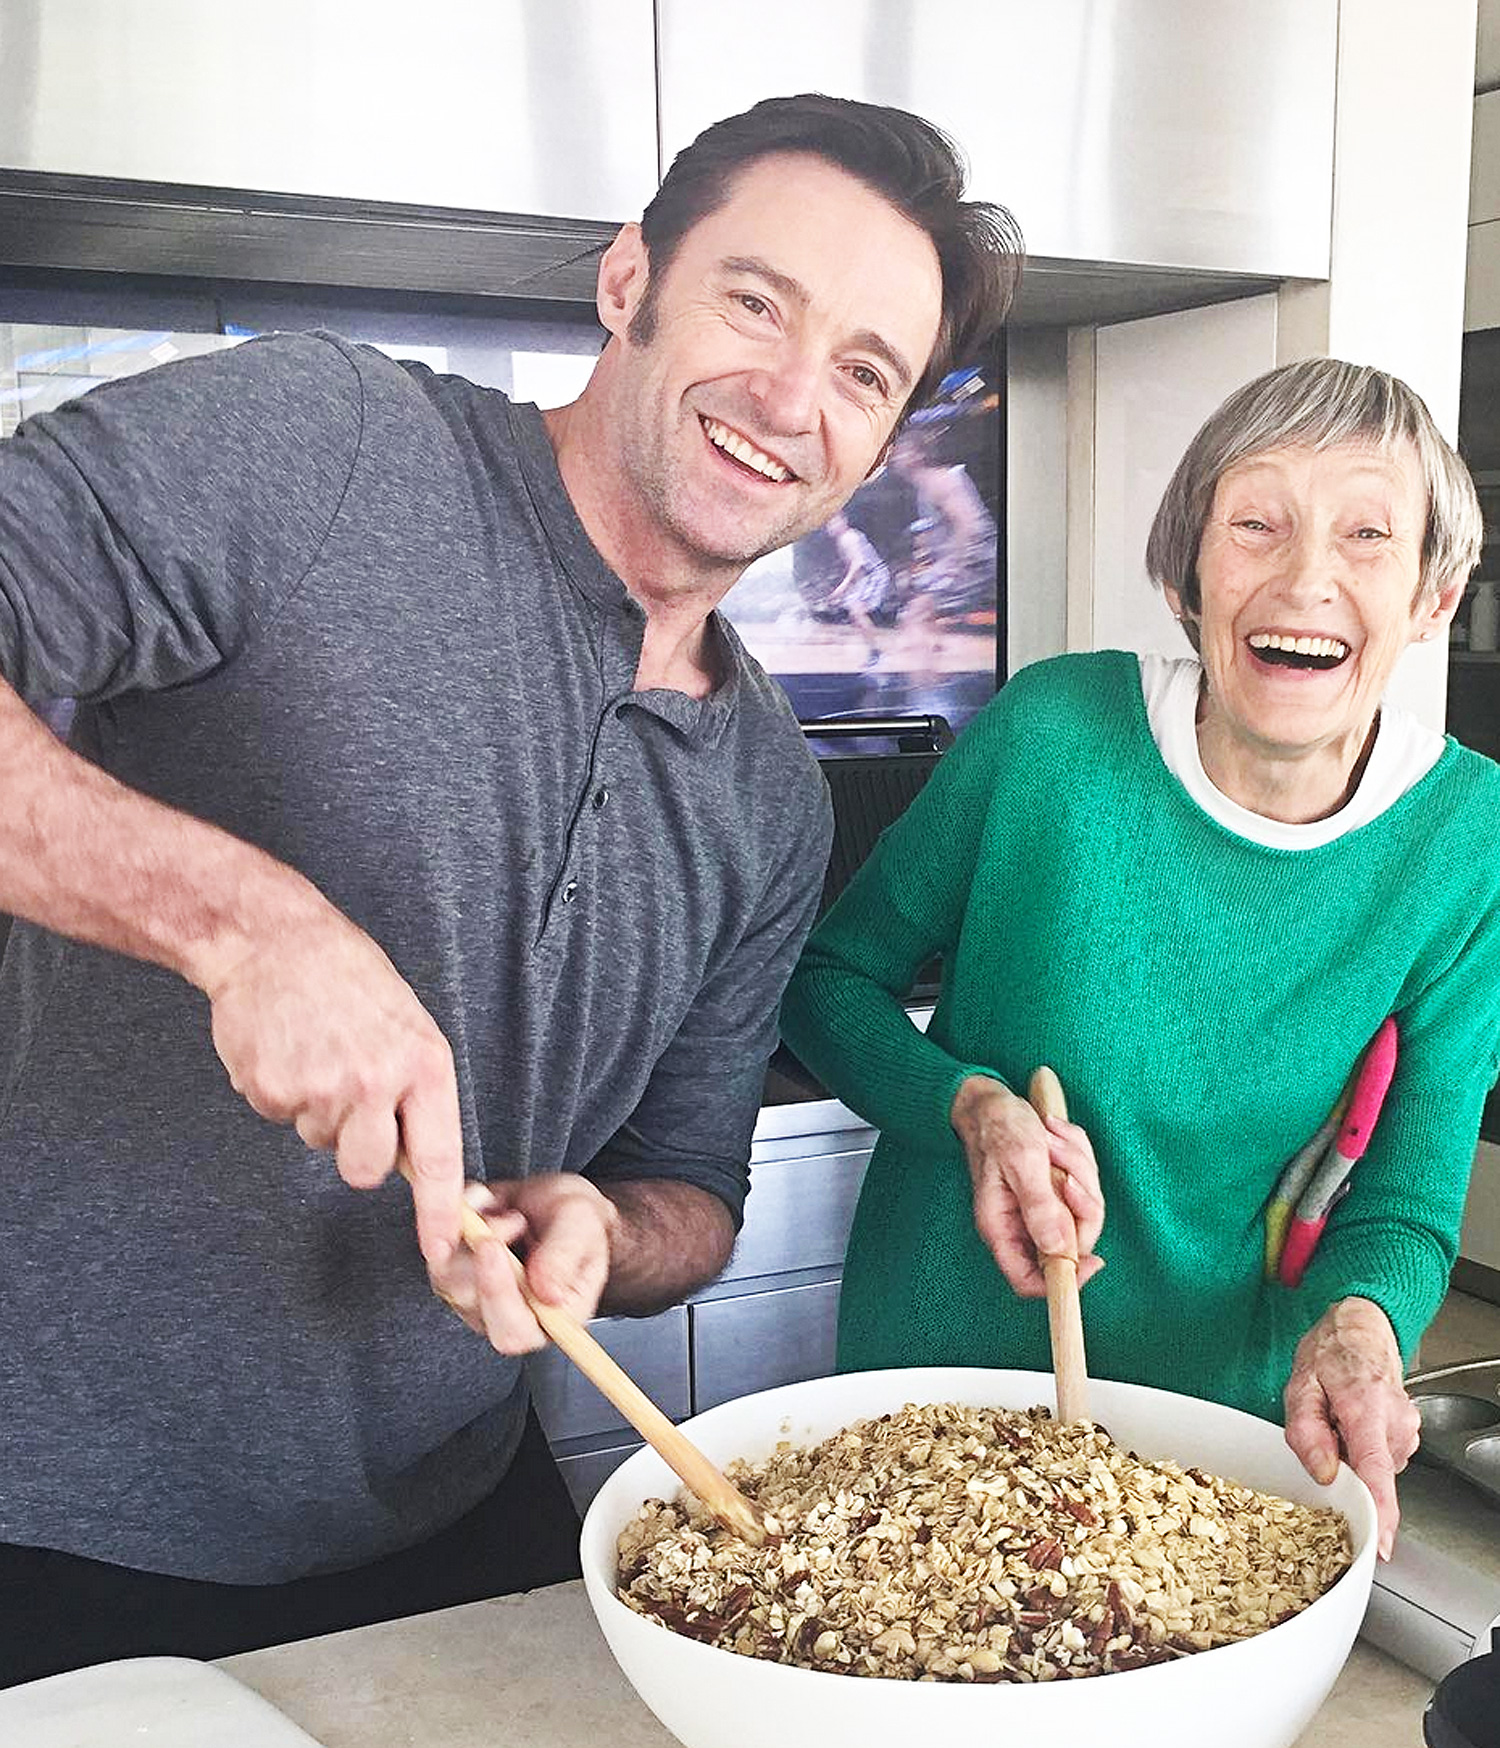 Hugh Jackman Shares His 'Favorite' Recipe from His Mom—Which Includes Her Adorable Nickname for Him